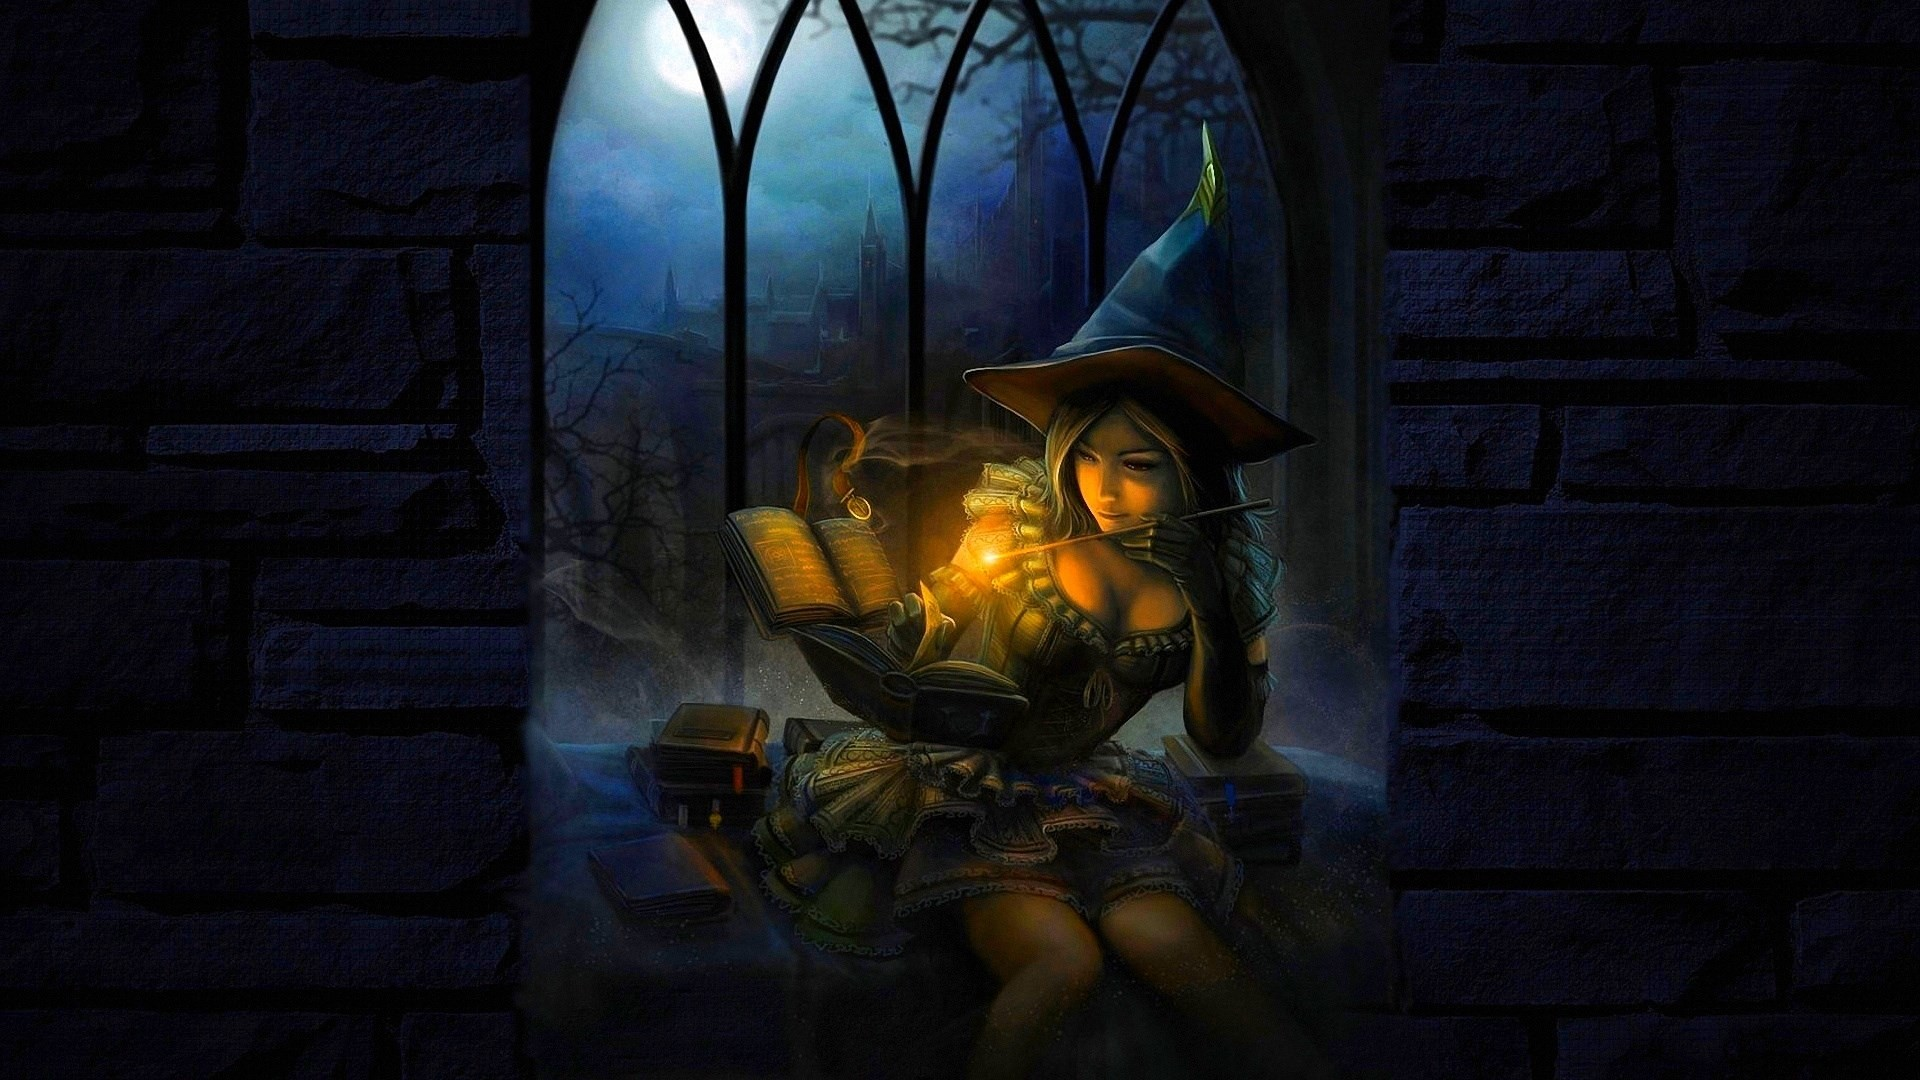 #1409307, witch category – Widescreen Wallpapers: witch picture